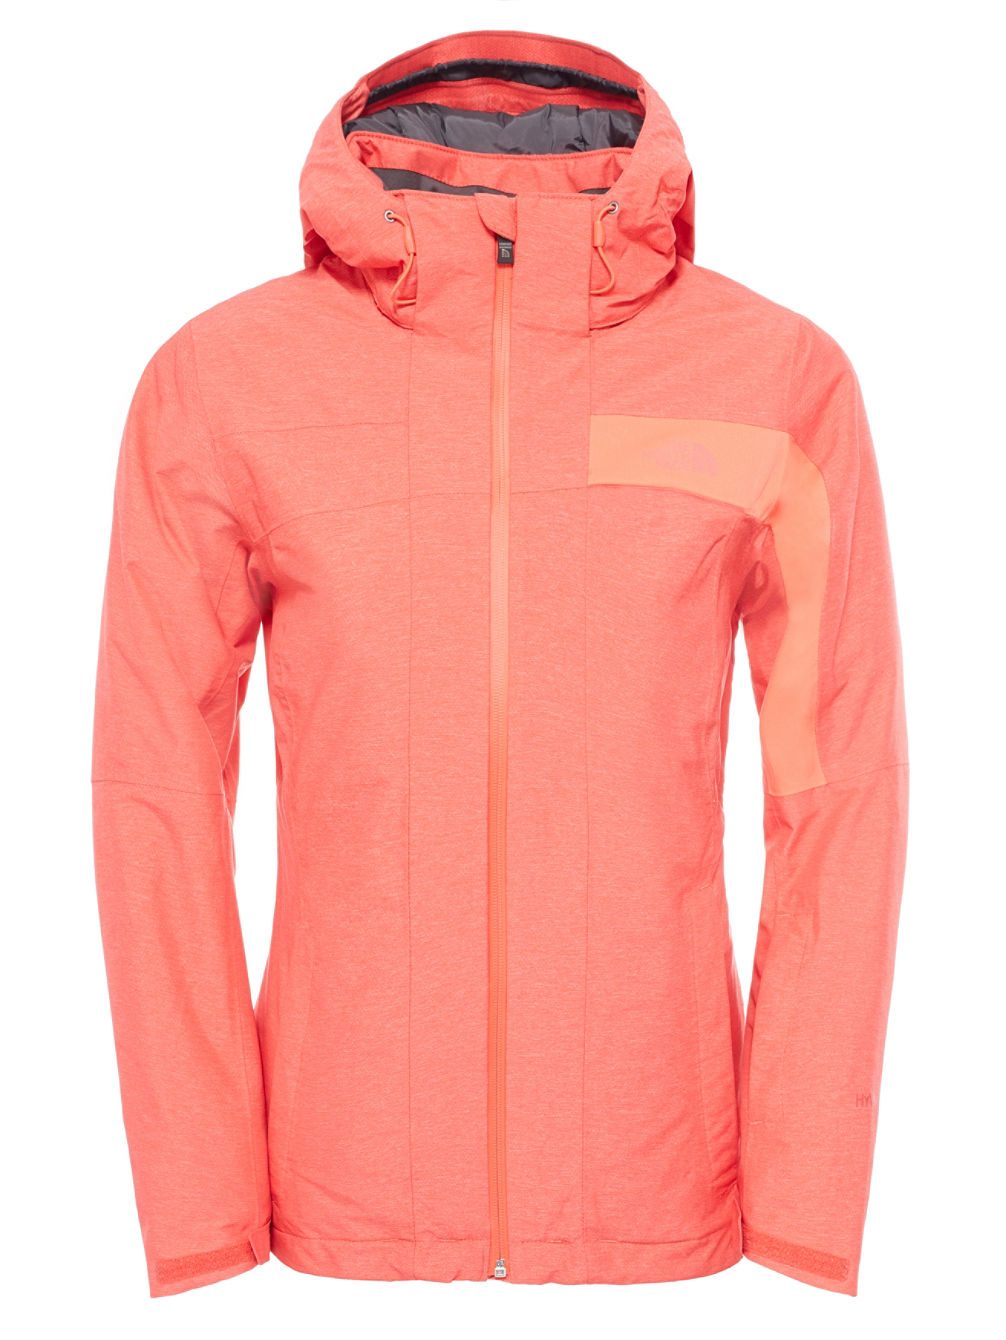 Buy north face jacket online india